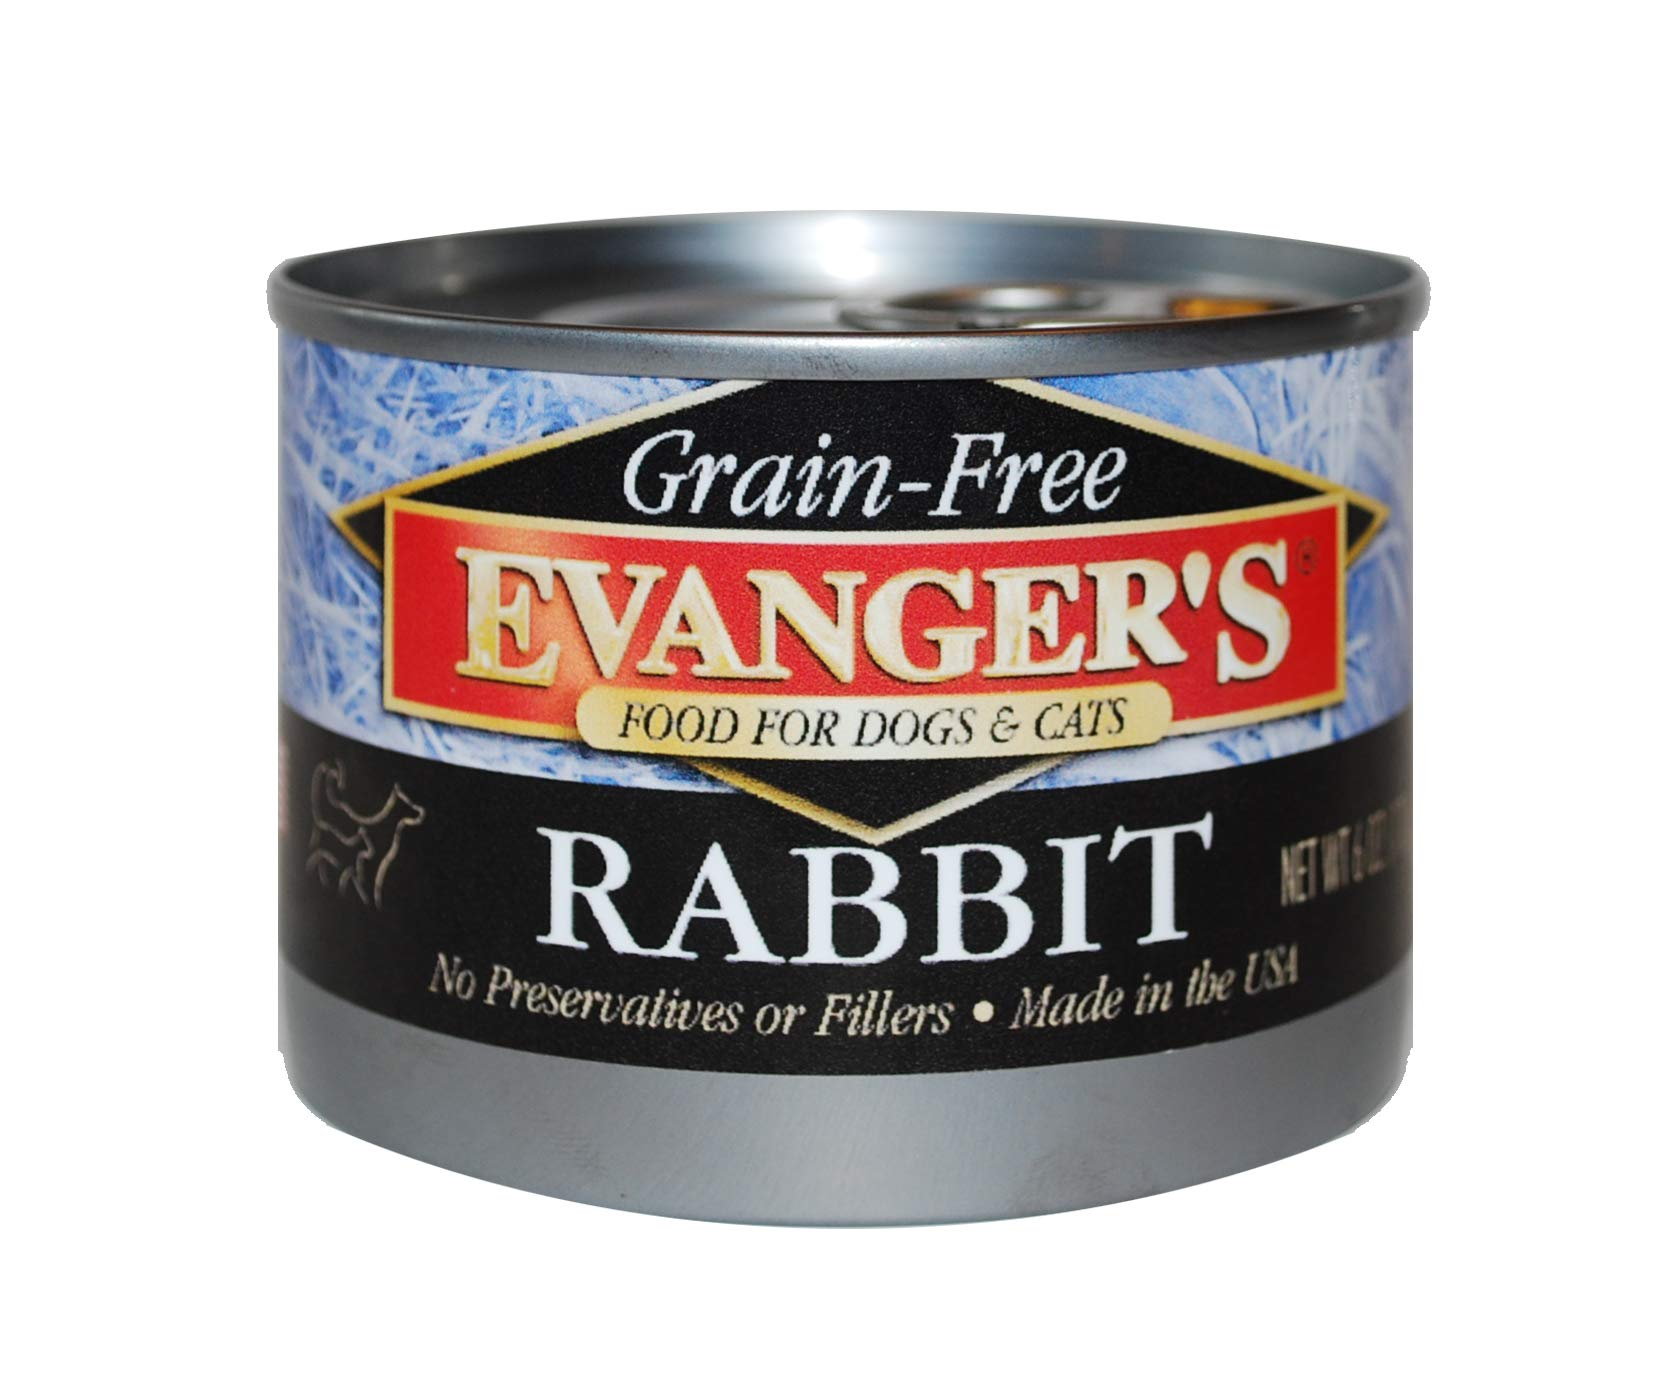 Evanger'S Grain-Free Rabbit Canned Food (24 Pack) by Evangers